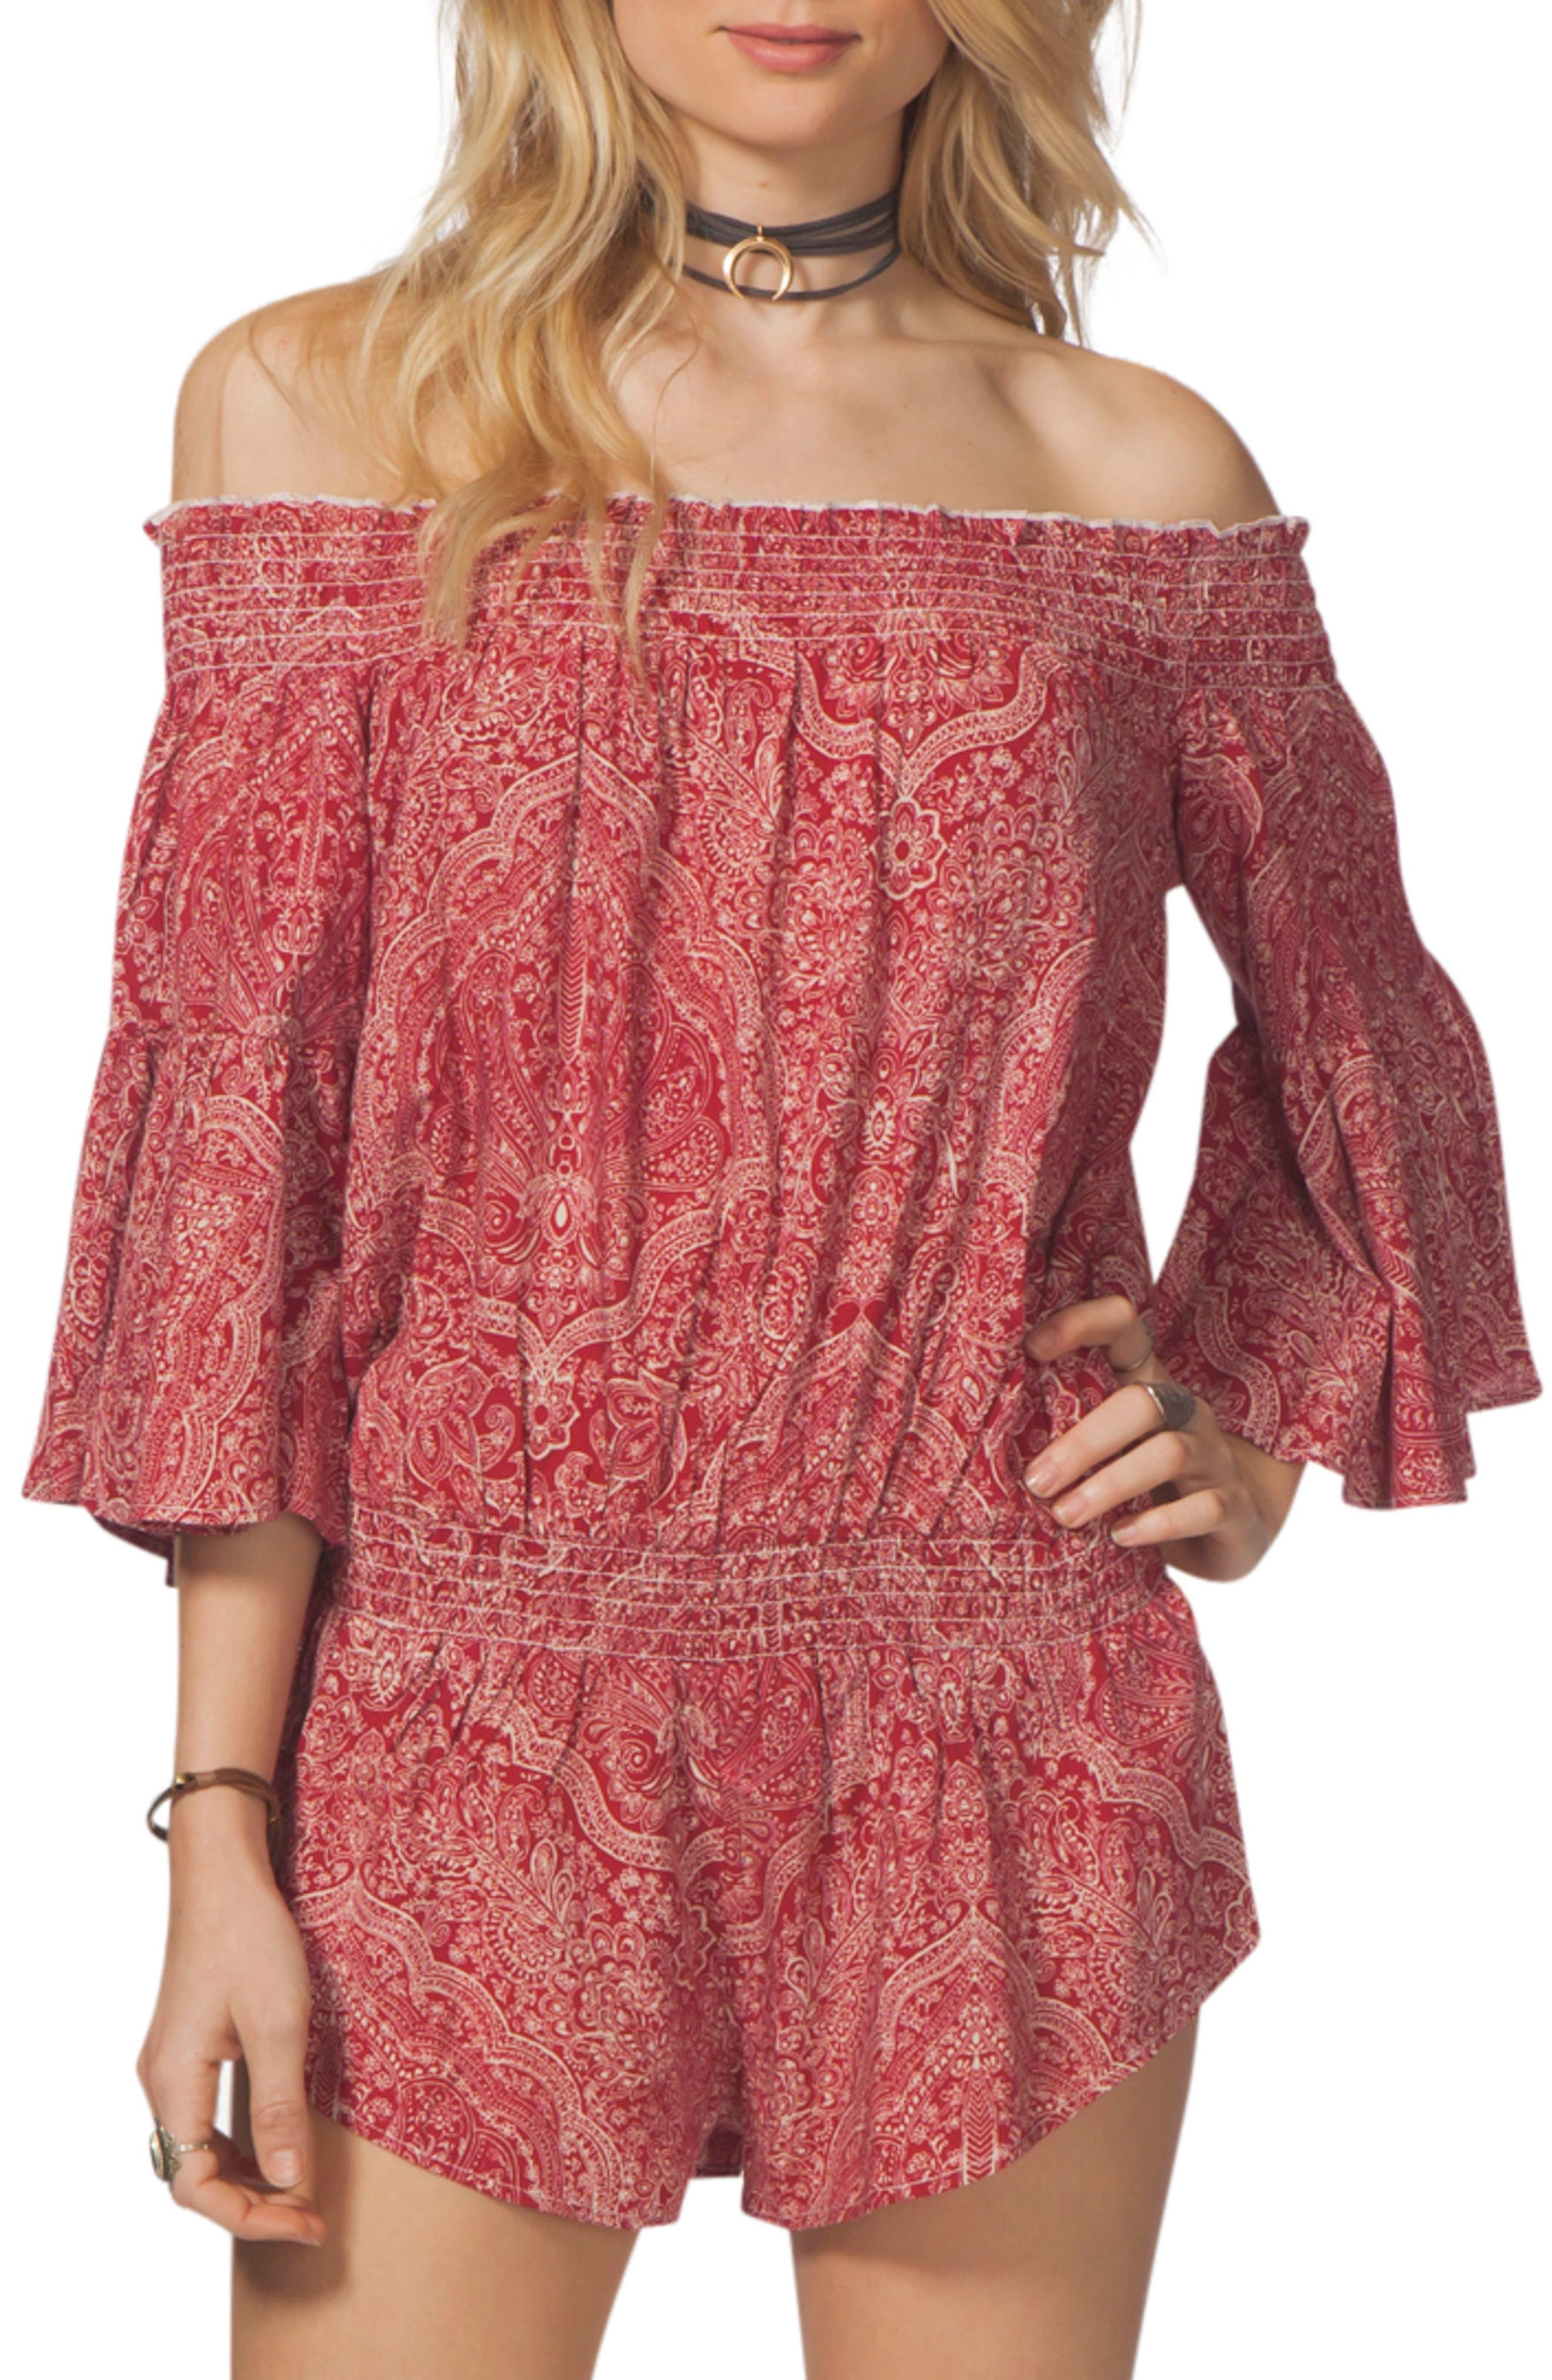 Rip Curl Everglow Paisley Print Off the Shoulder Romper